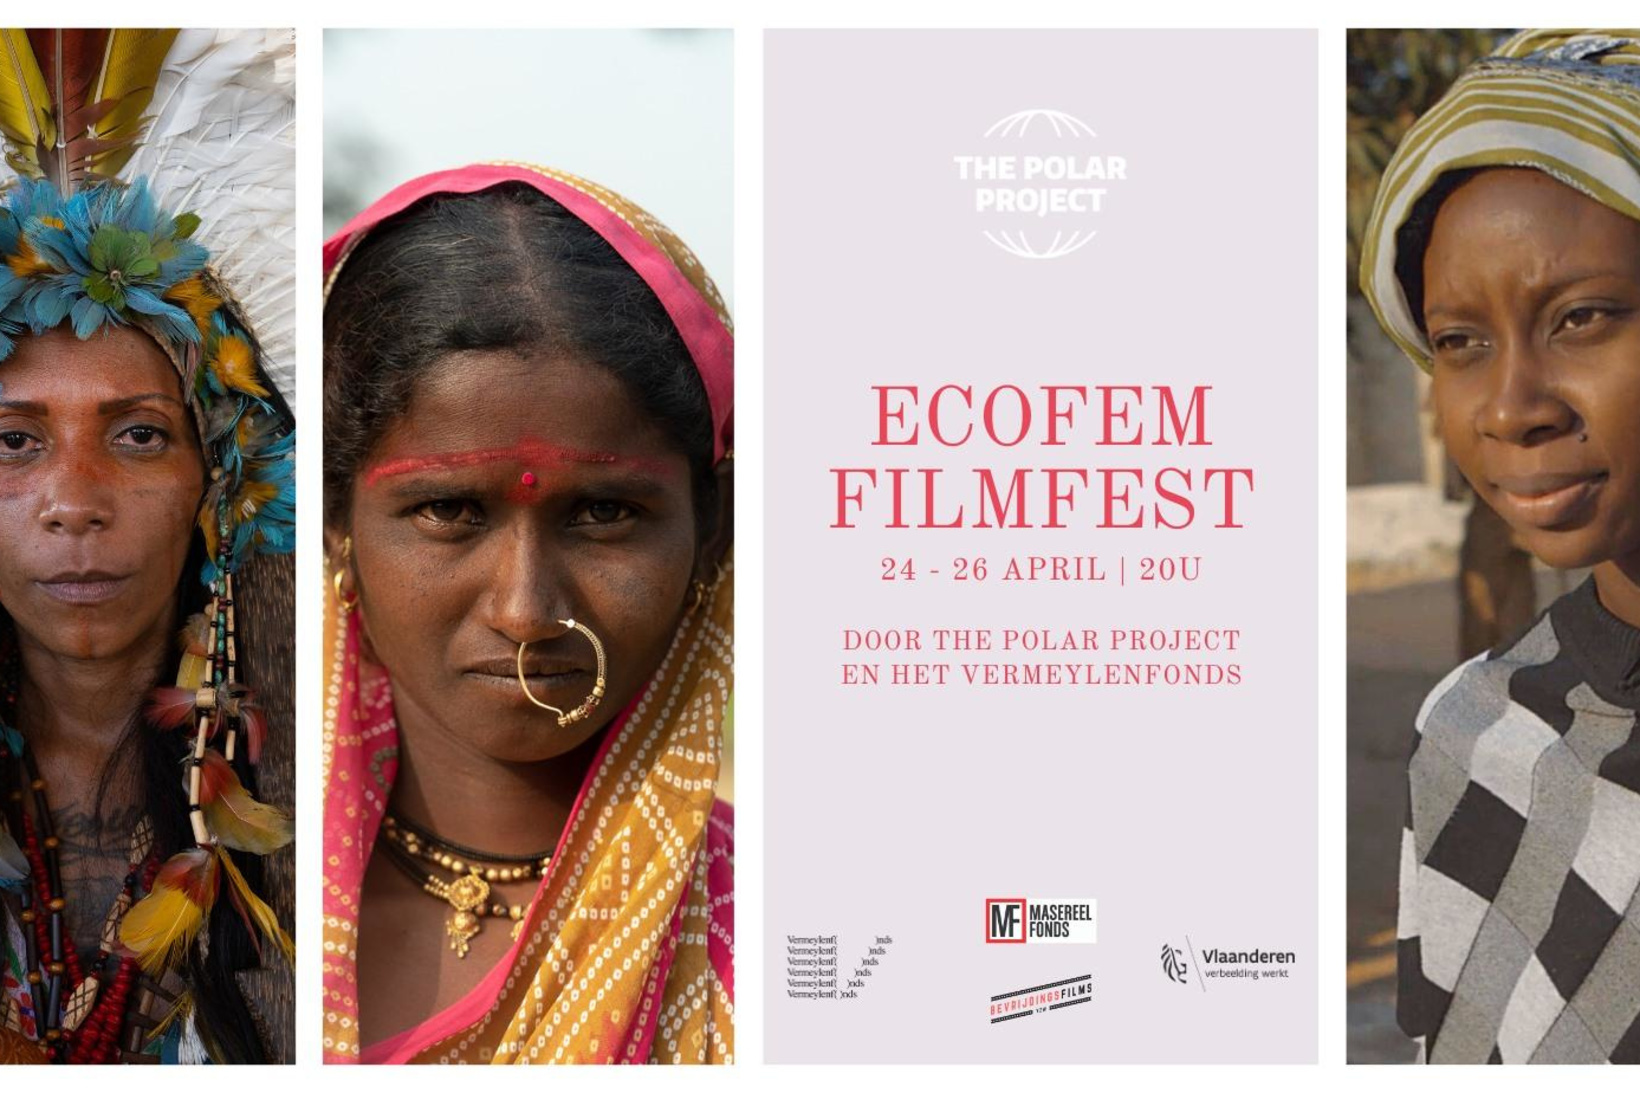 Ecofem Filmfest, Polar Project